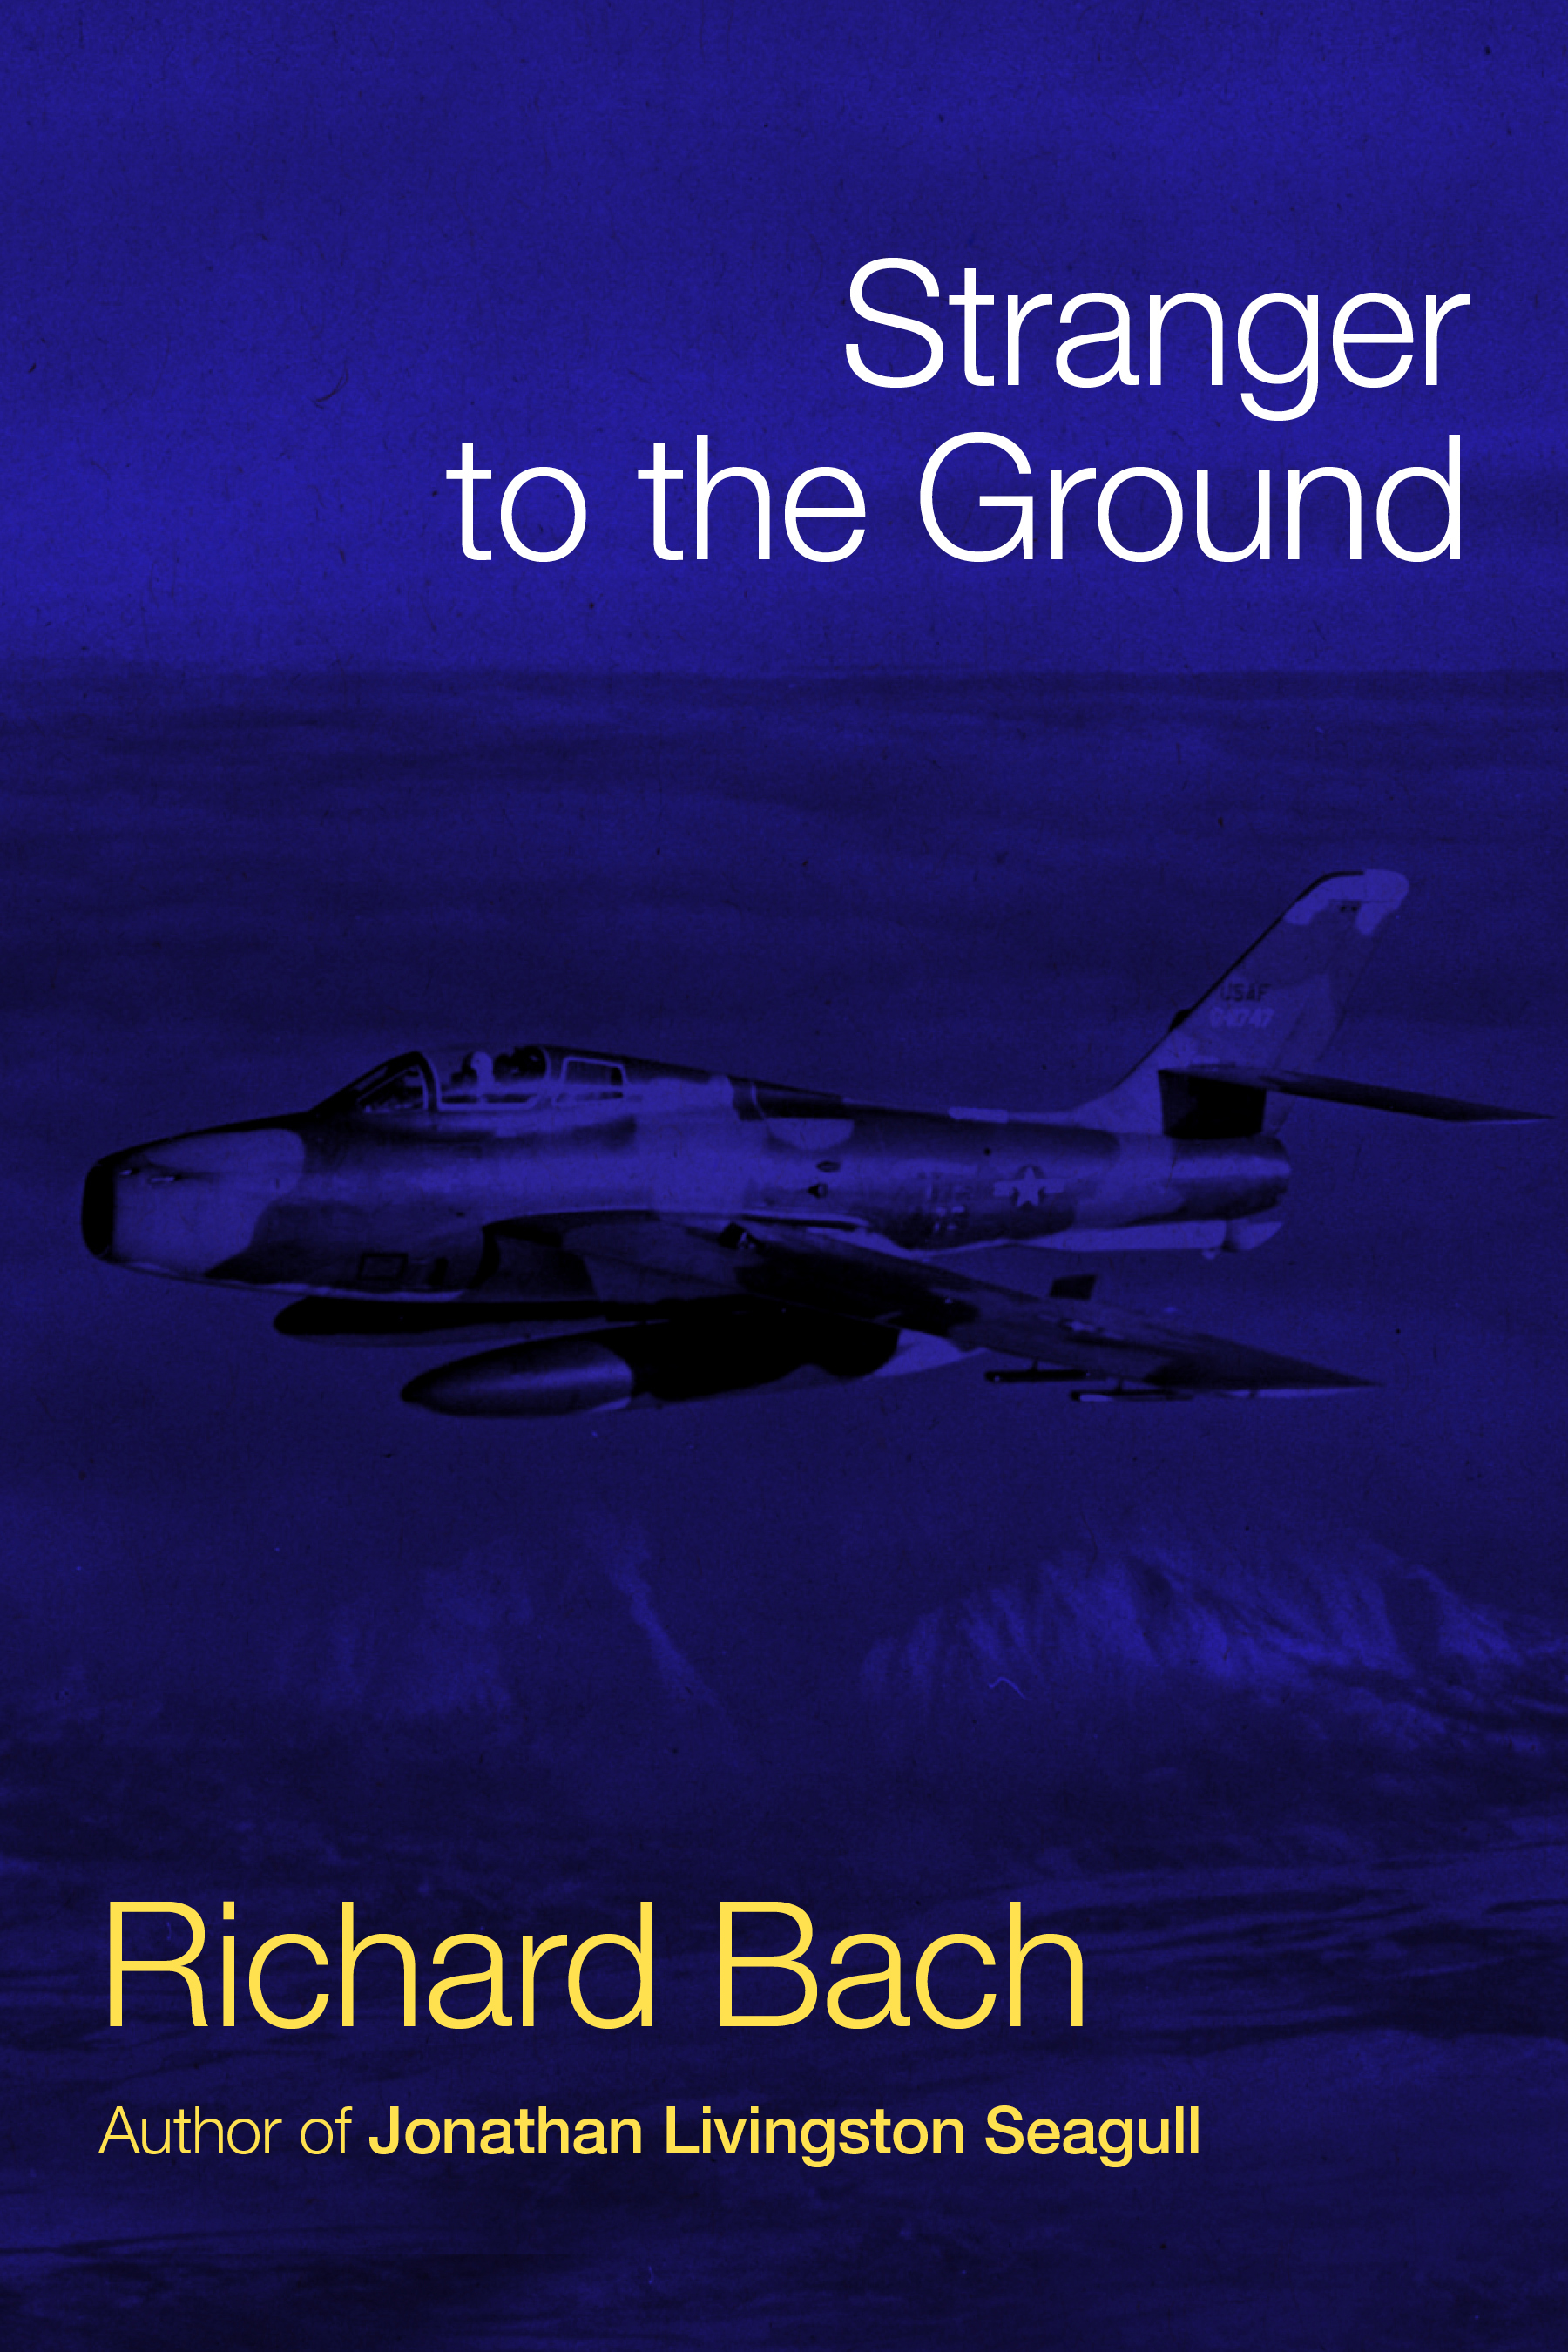 Stranger to the ground ebook by richard bach official publisher cvr9781451697452 9781451697452 hr fandeluxe Image collections